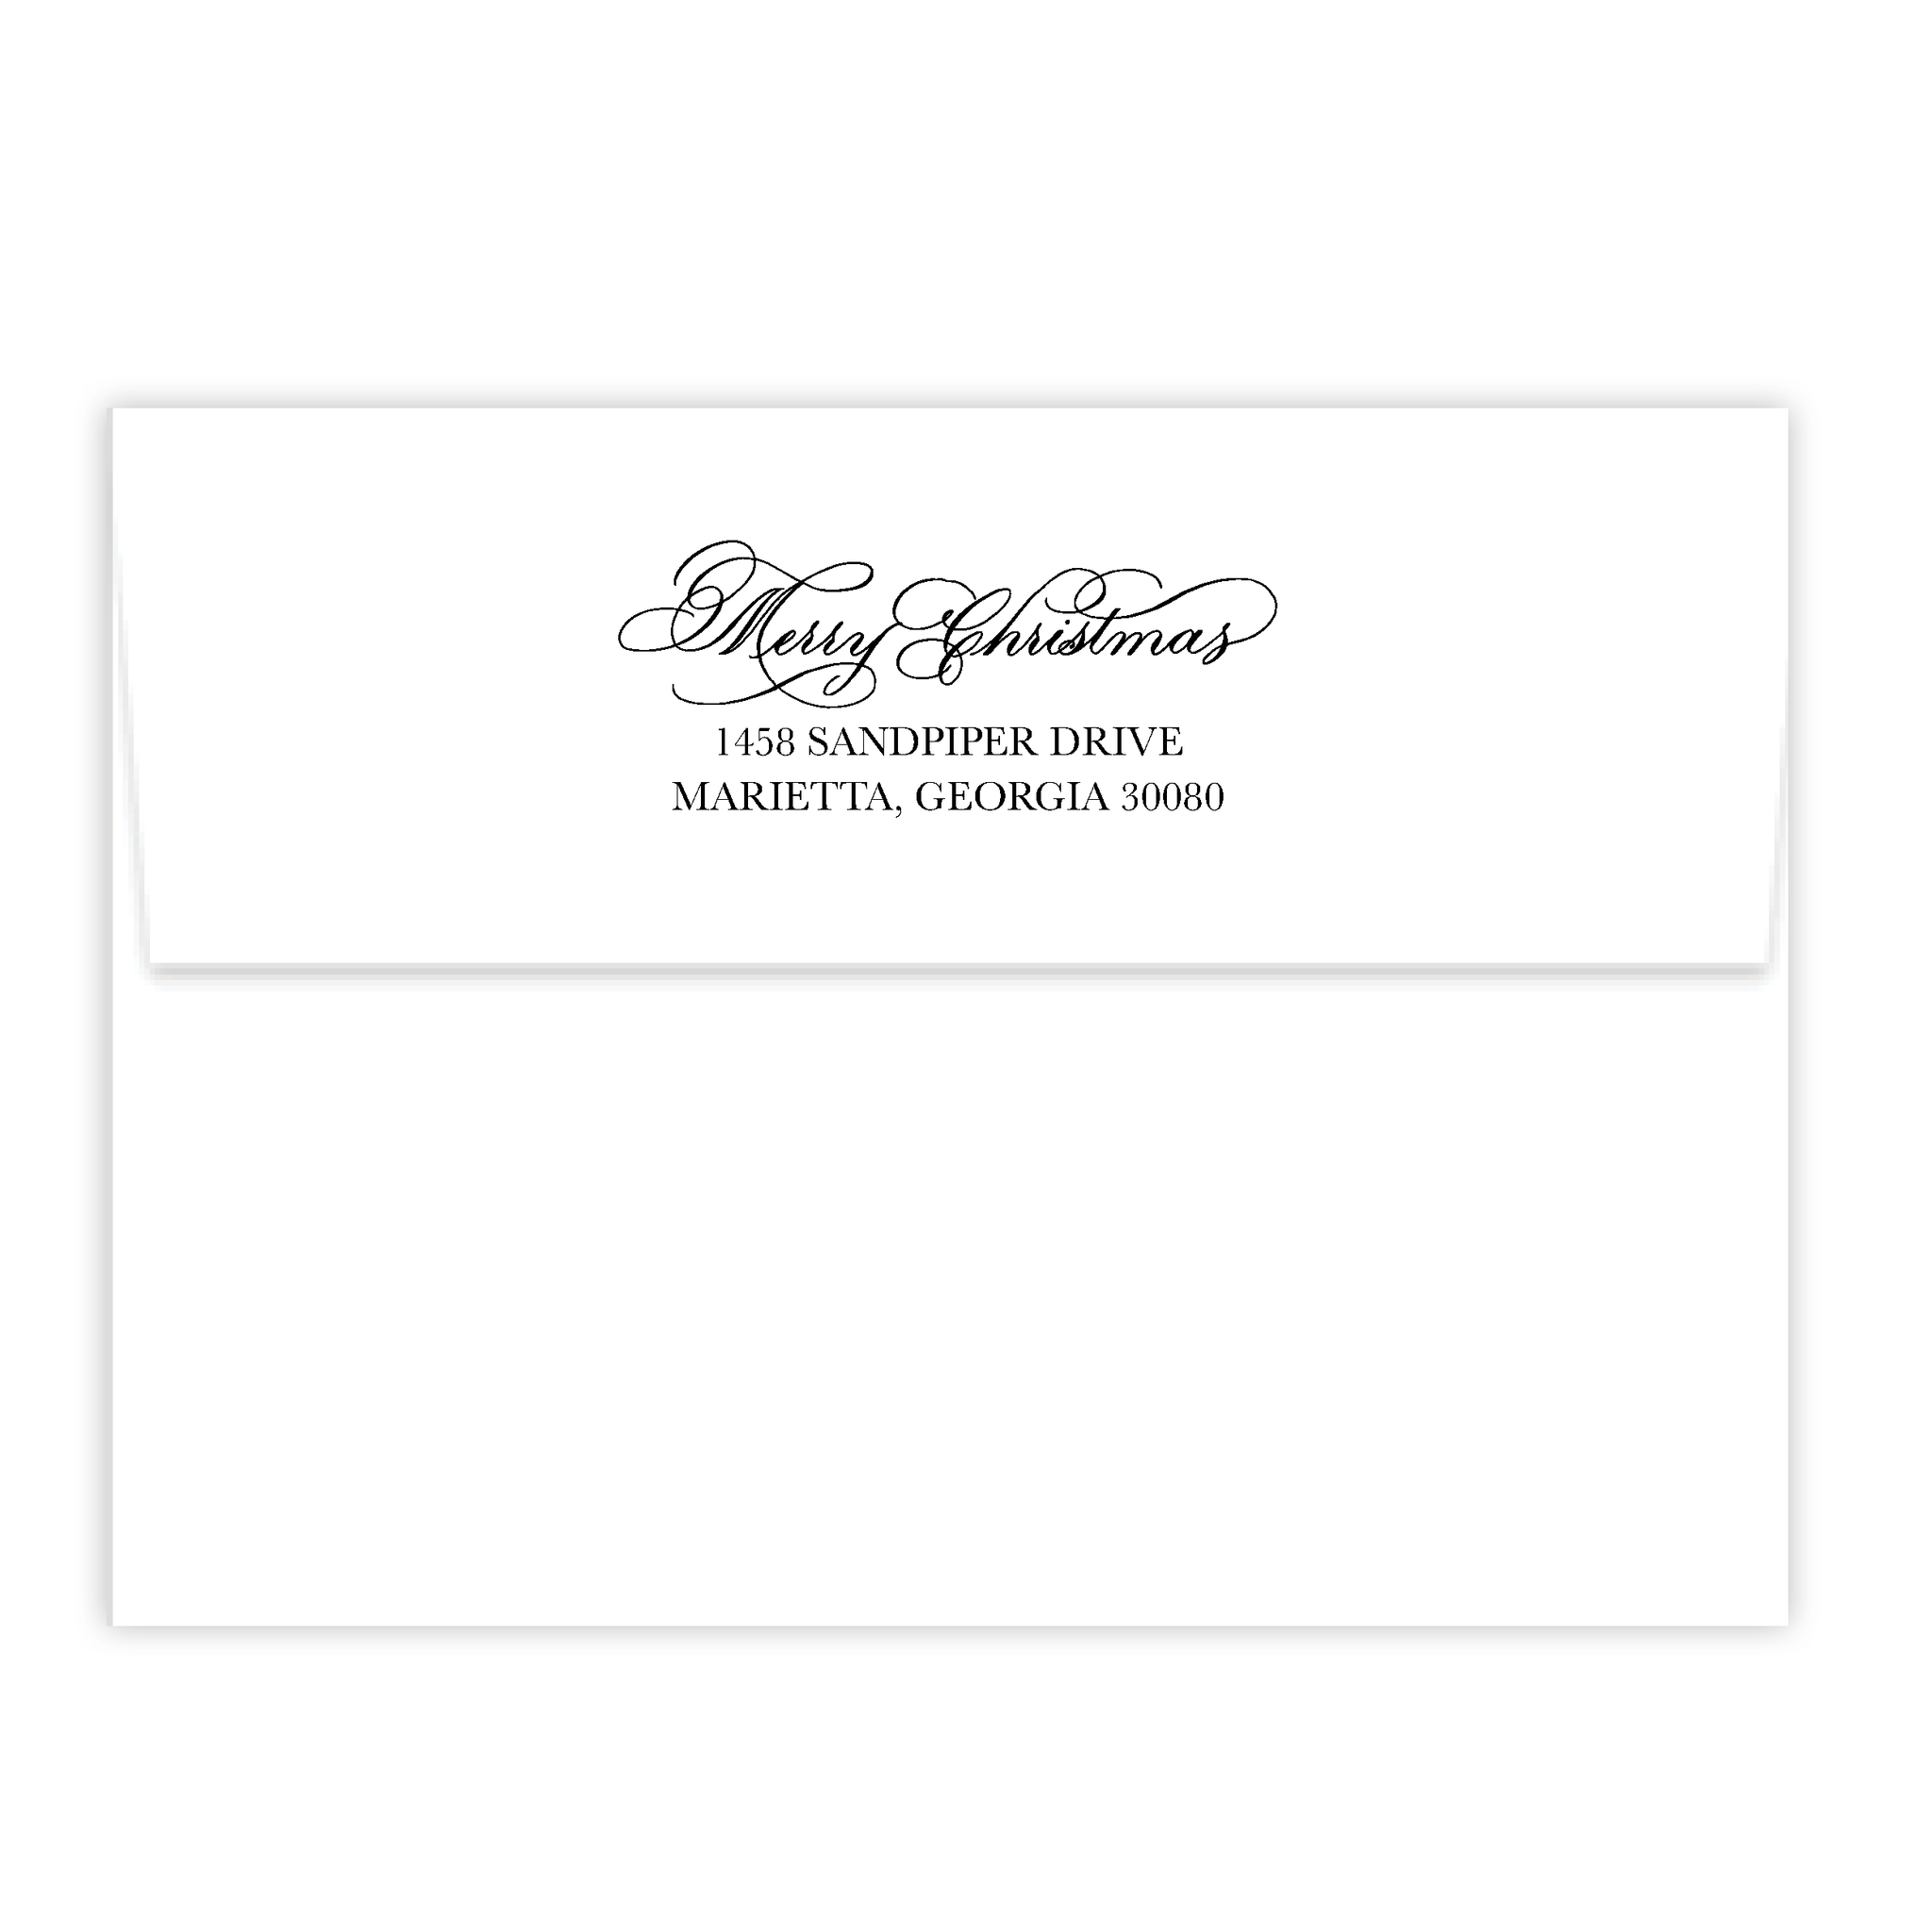 Merry Christmas Calligraphy Self Inking Stamp